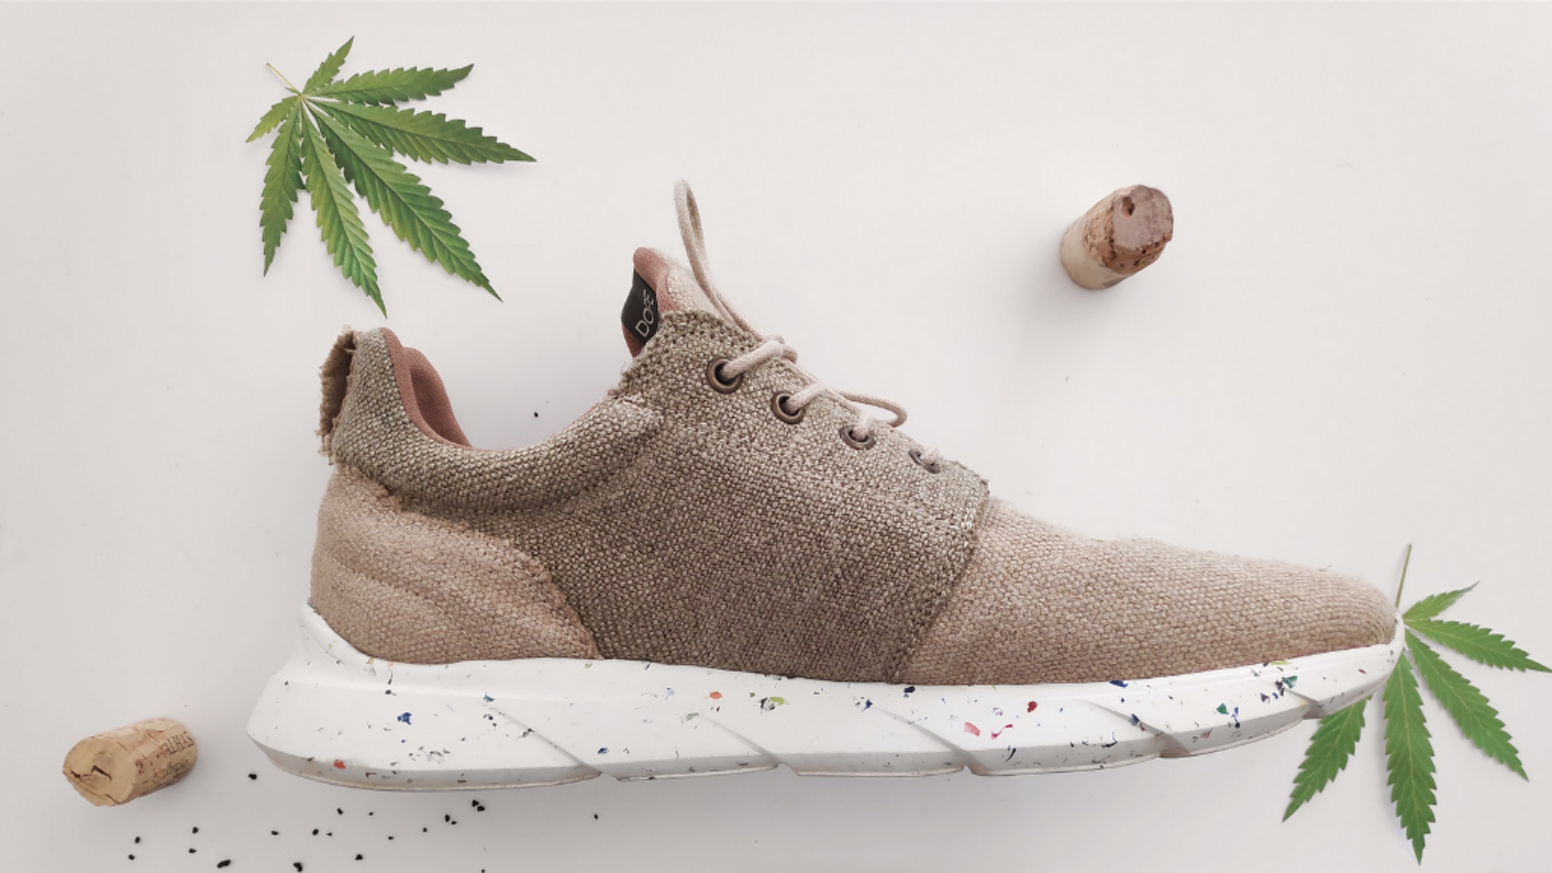 Presenting the world's 1st eco-friendly shoes made from hemp, that are also waterproof. The shoes you will explore with for a lifetime. Order now on our website! Now 8000Kicks